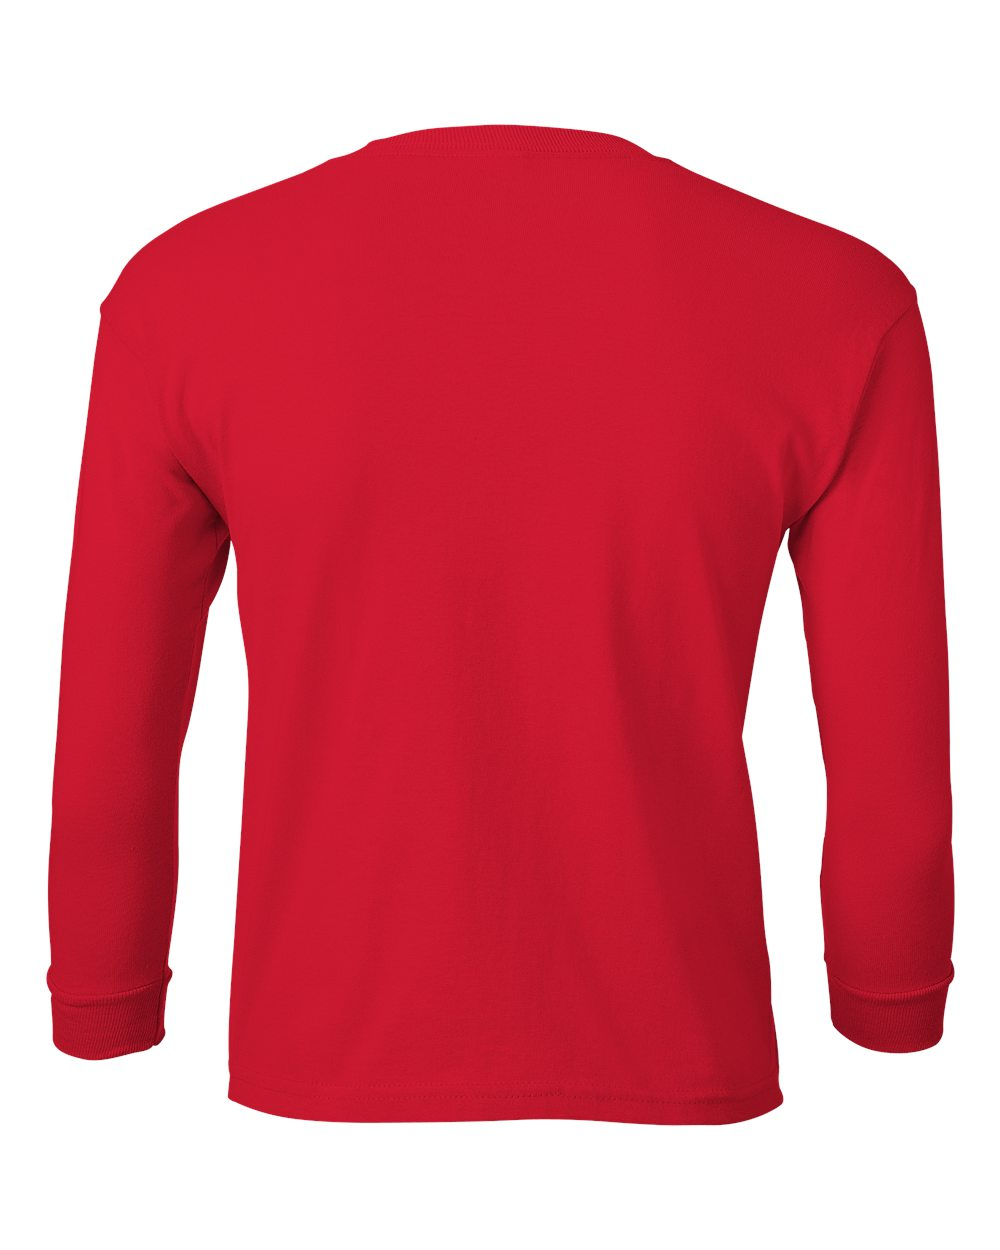 Gildan Long Sleeve t Shirt Template Cotton Long Sleeve T-shirt